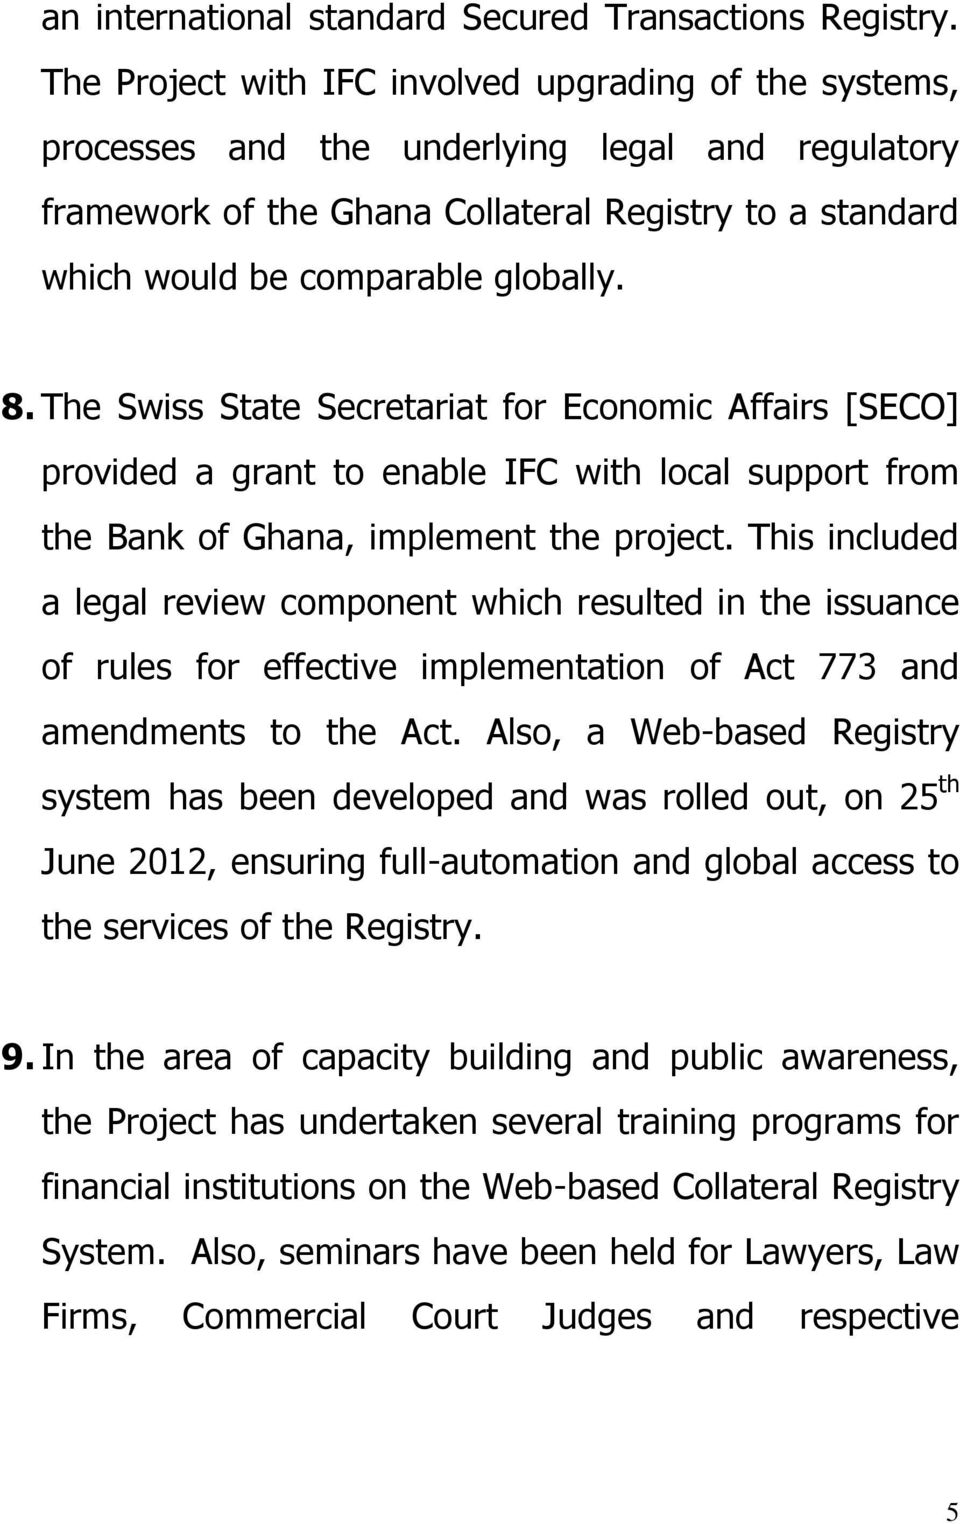 8. The Swiss State Secretariat for Economic Affairs [SECO] provided a grant to enable IFC with local support from the Bank of Ghana, implement the project.